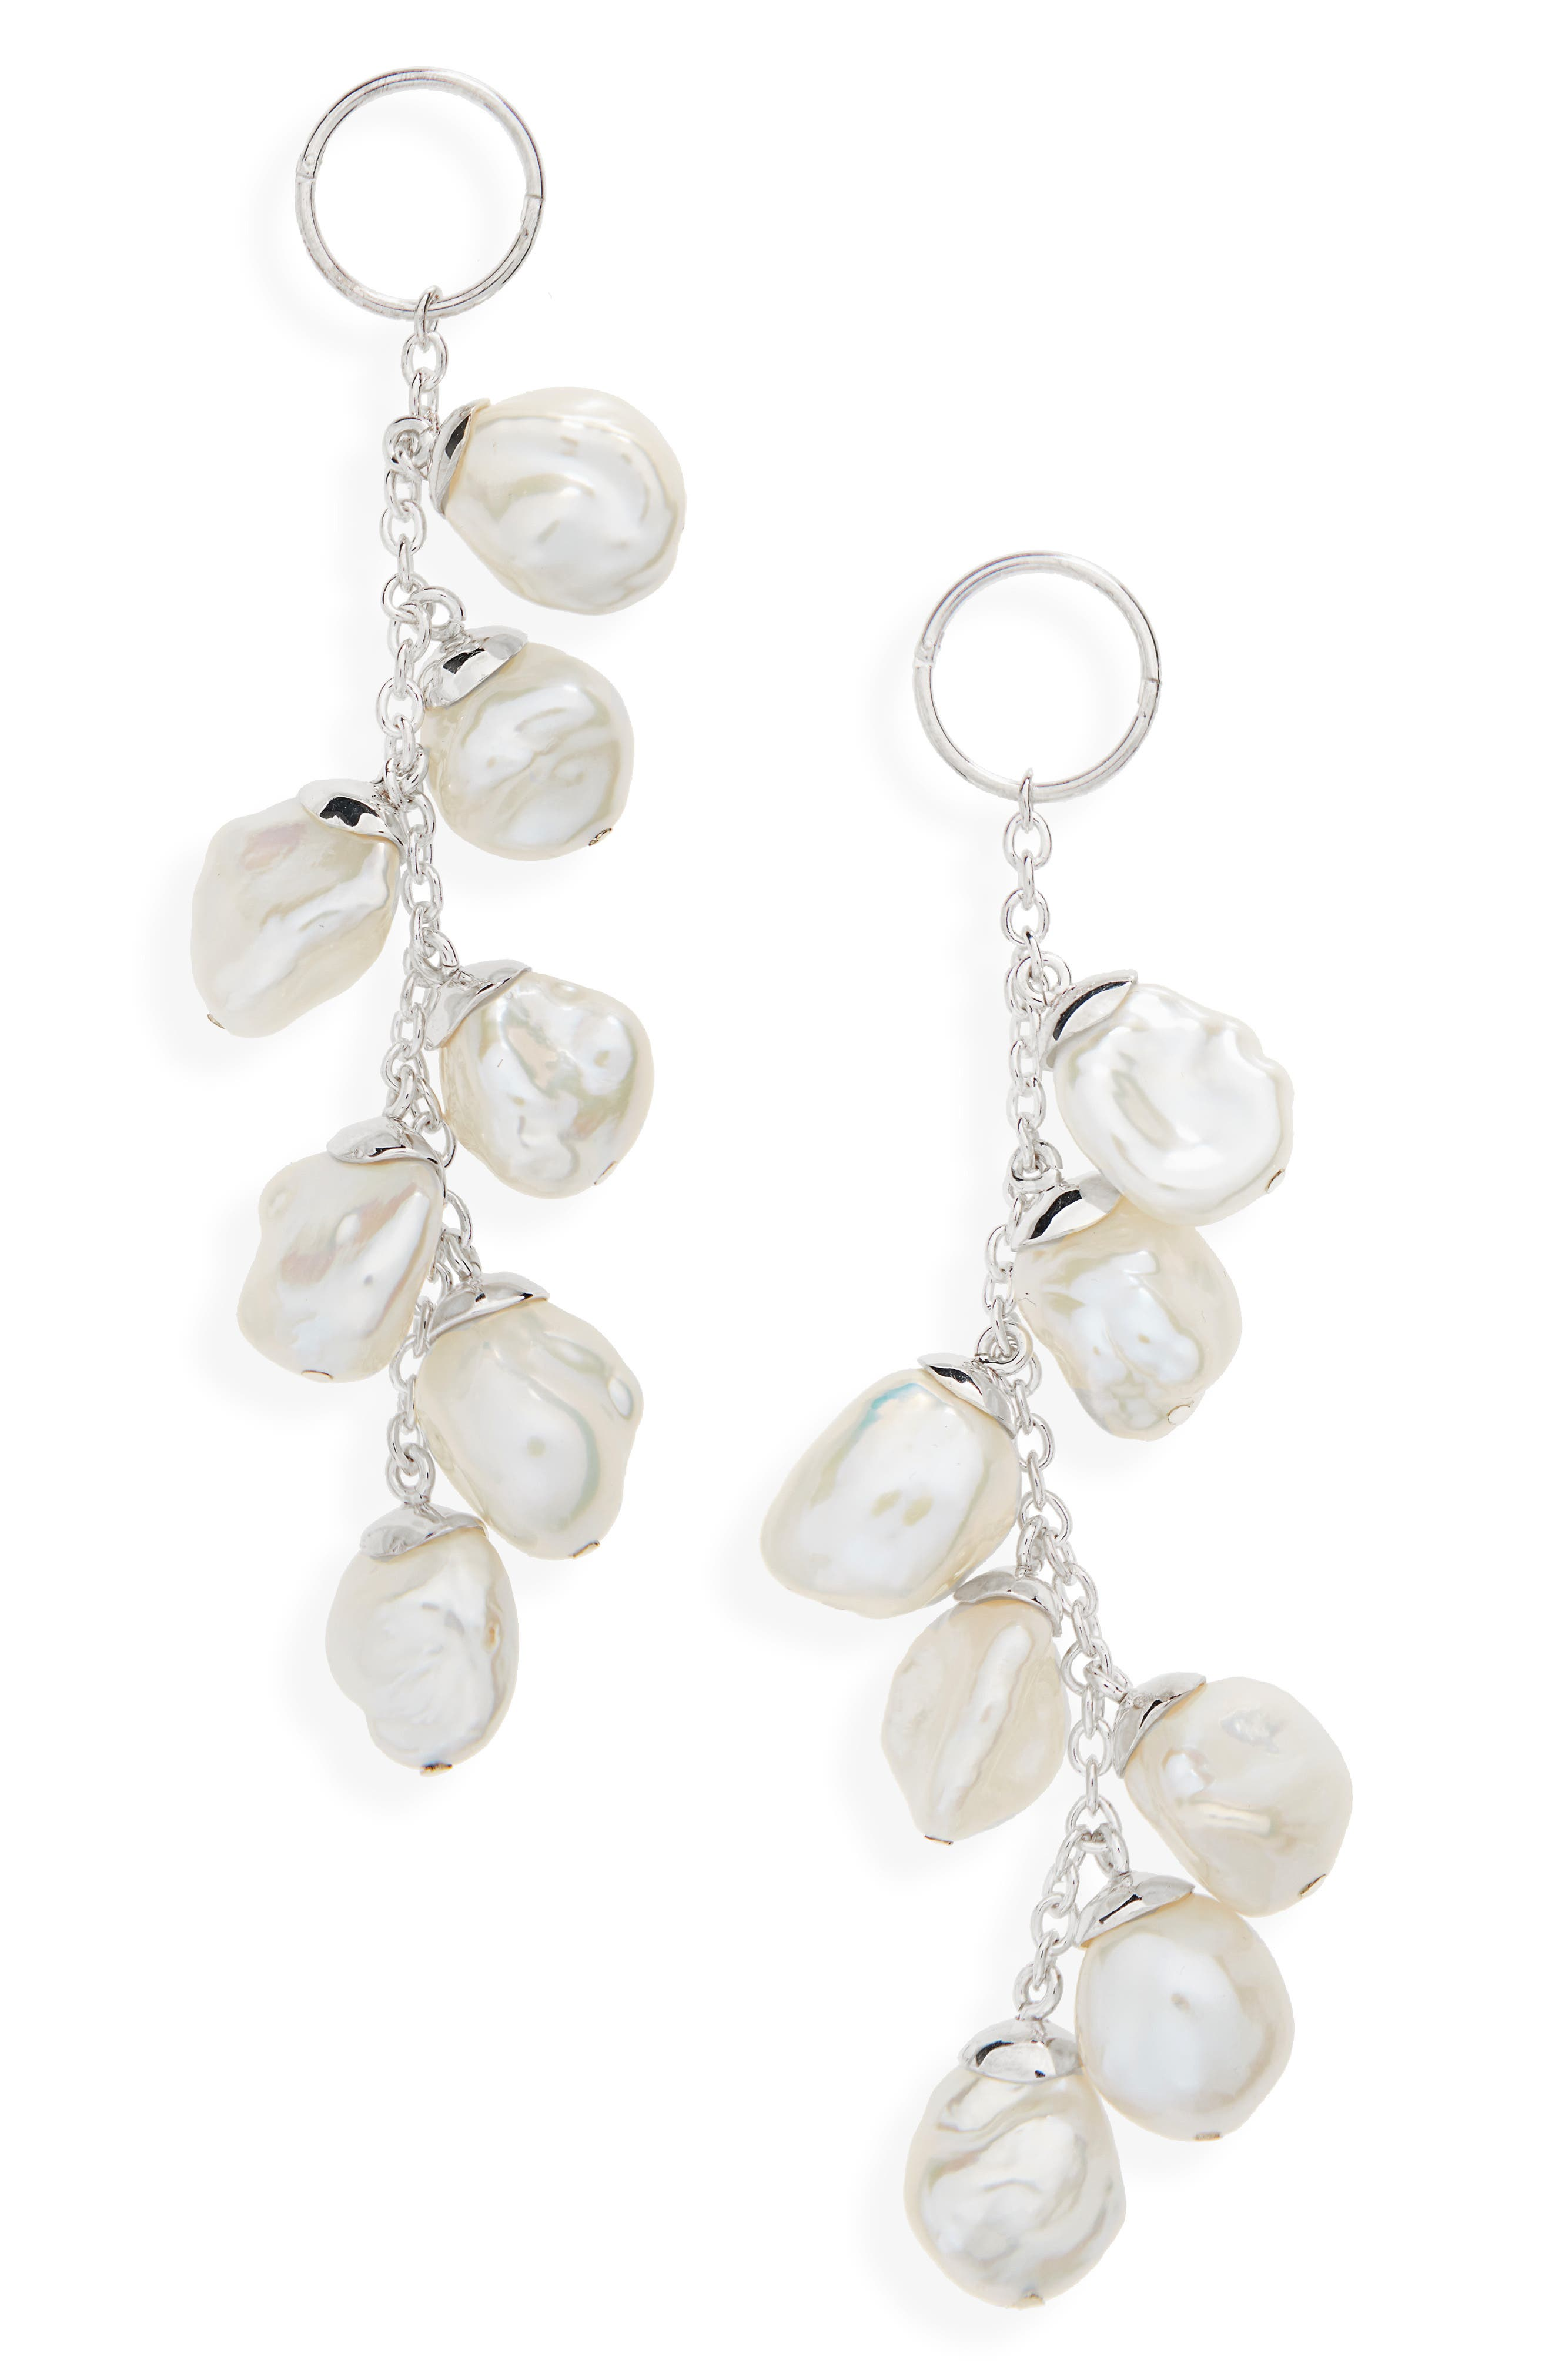 Baroque Cultured Freshwater Pearl Drop Earrings,                         Main,                         color, Silver